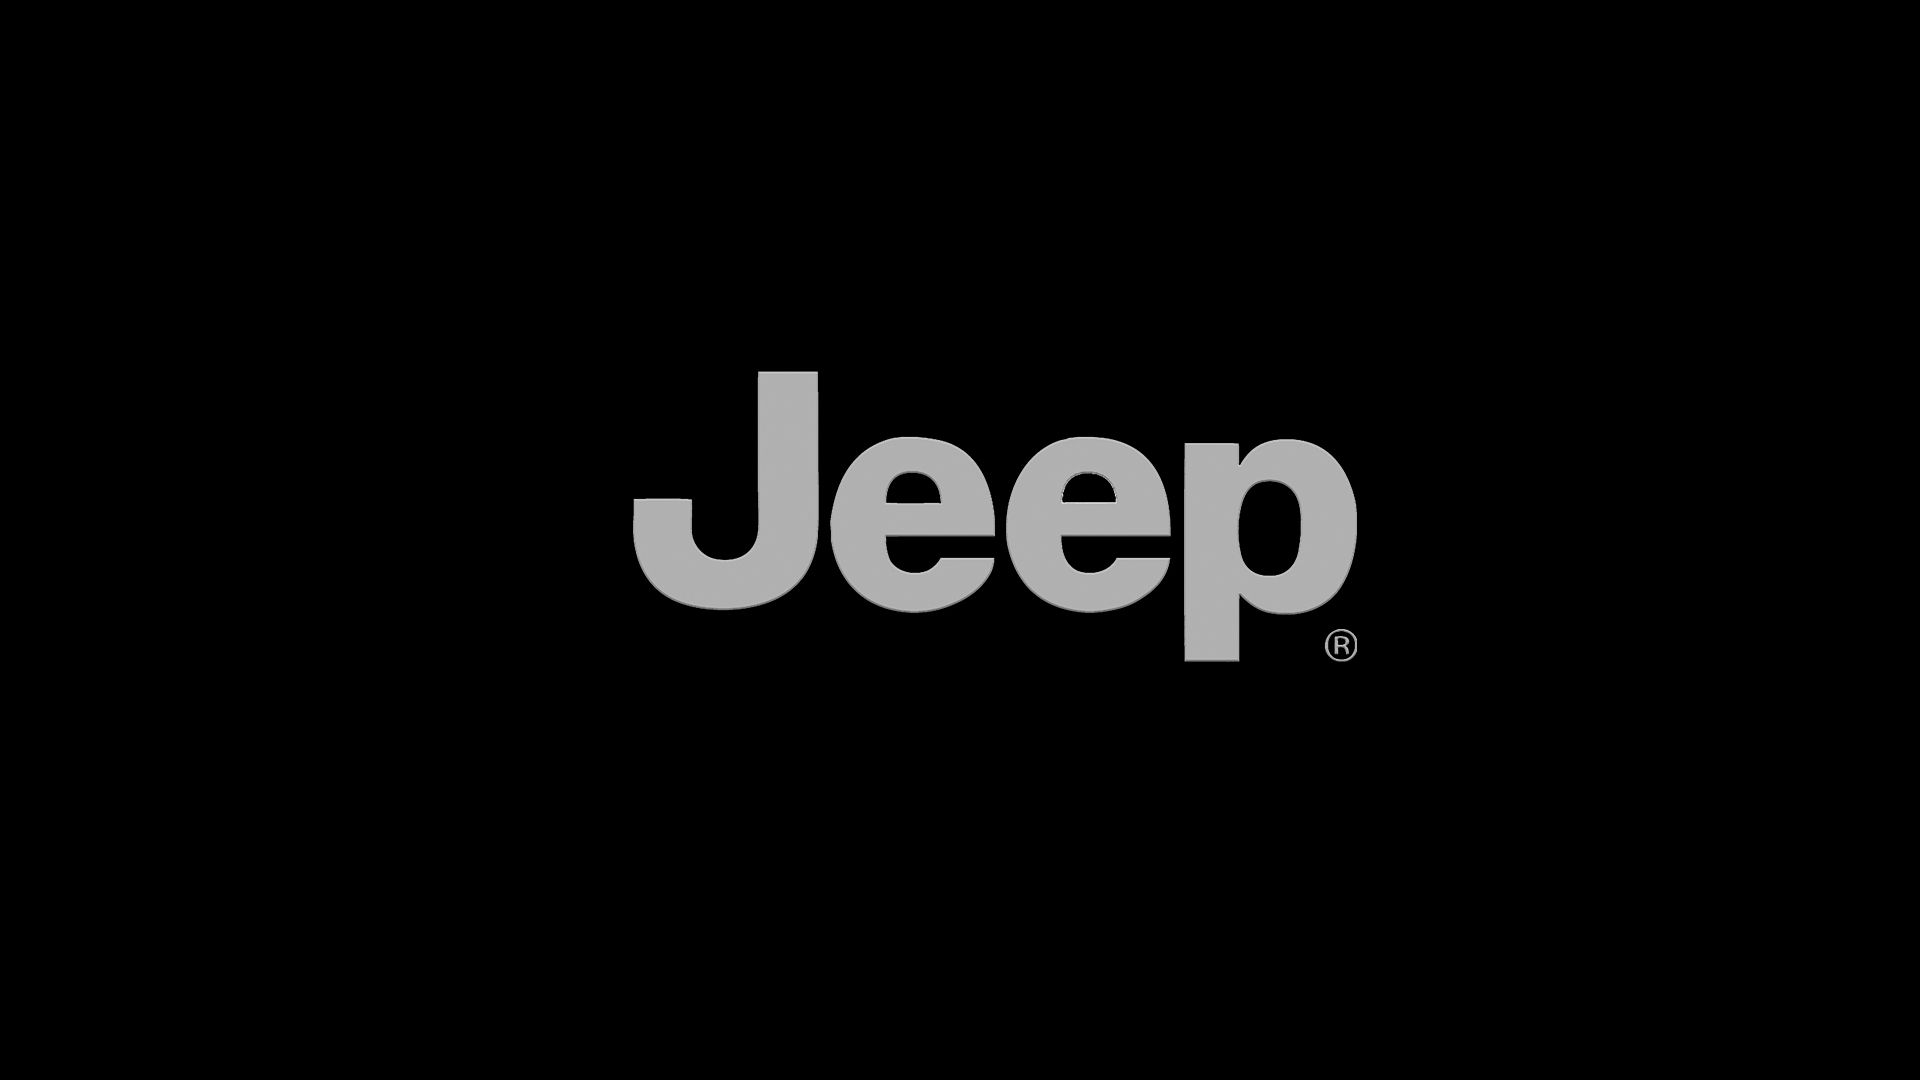 Jeep Logo Wallpapers Wallpapers Backgrounds Images Art Photos Jeep Logo Jeep Car Logos